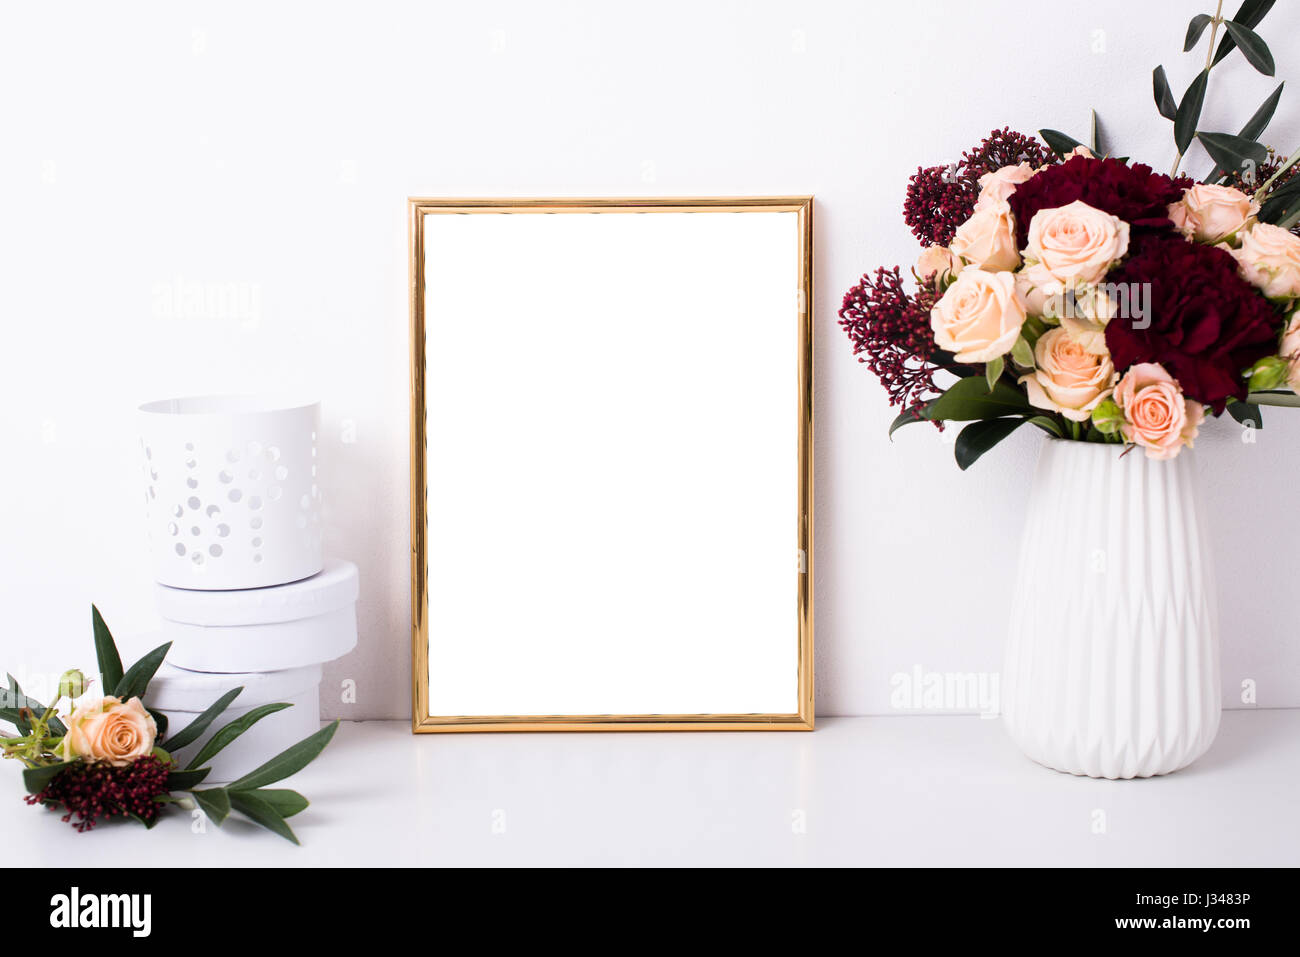 Golden Frame Mock Up On White Wall Background Home Decor With Stock